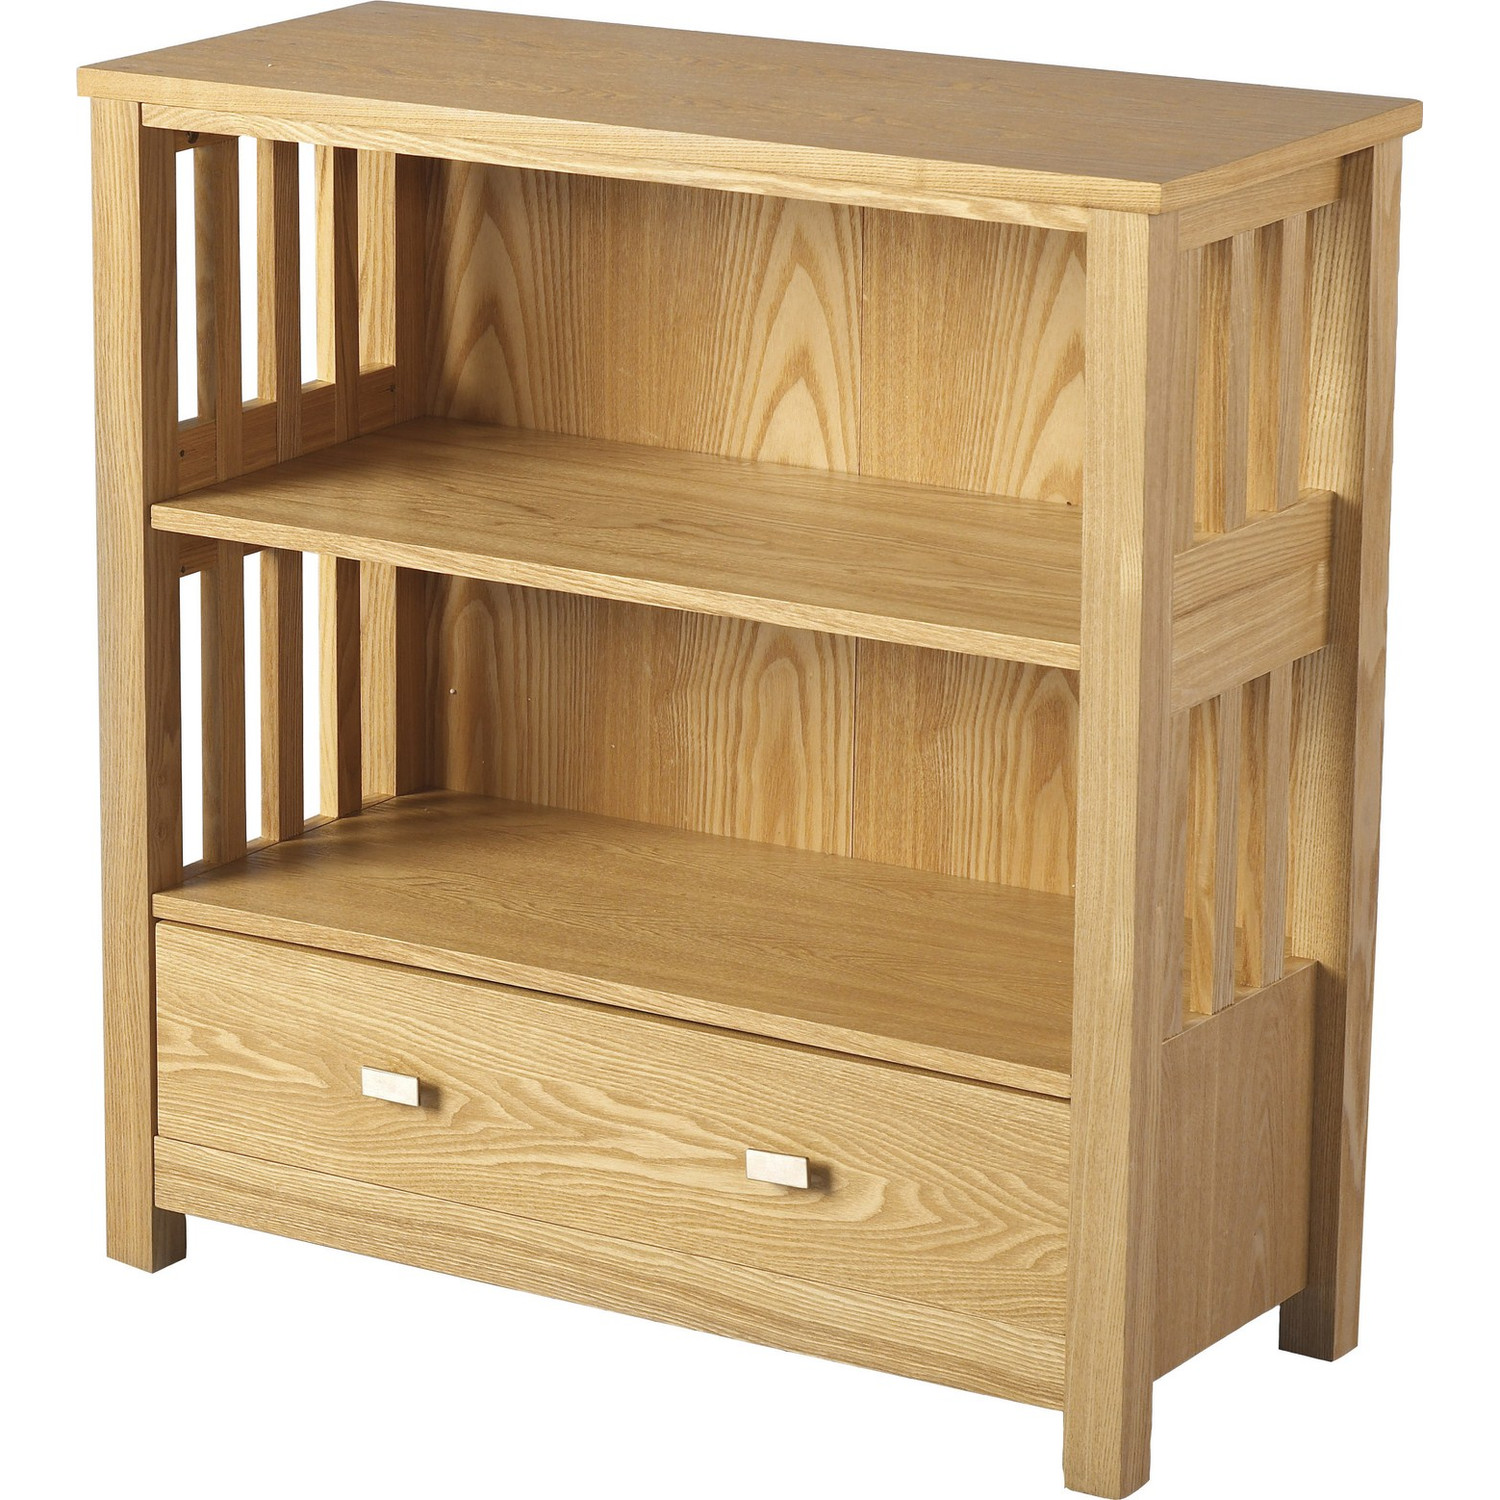 Image of: Top Short Bookcase